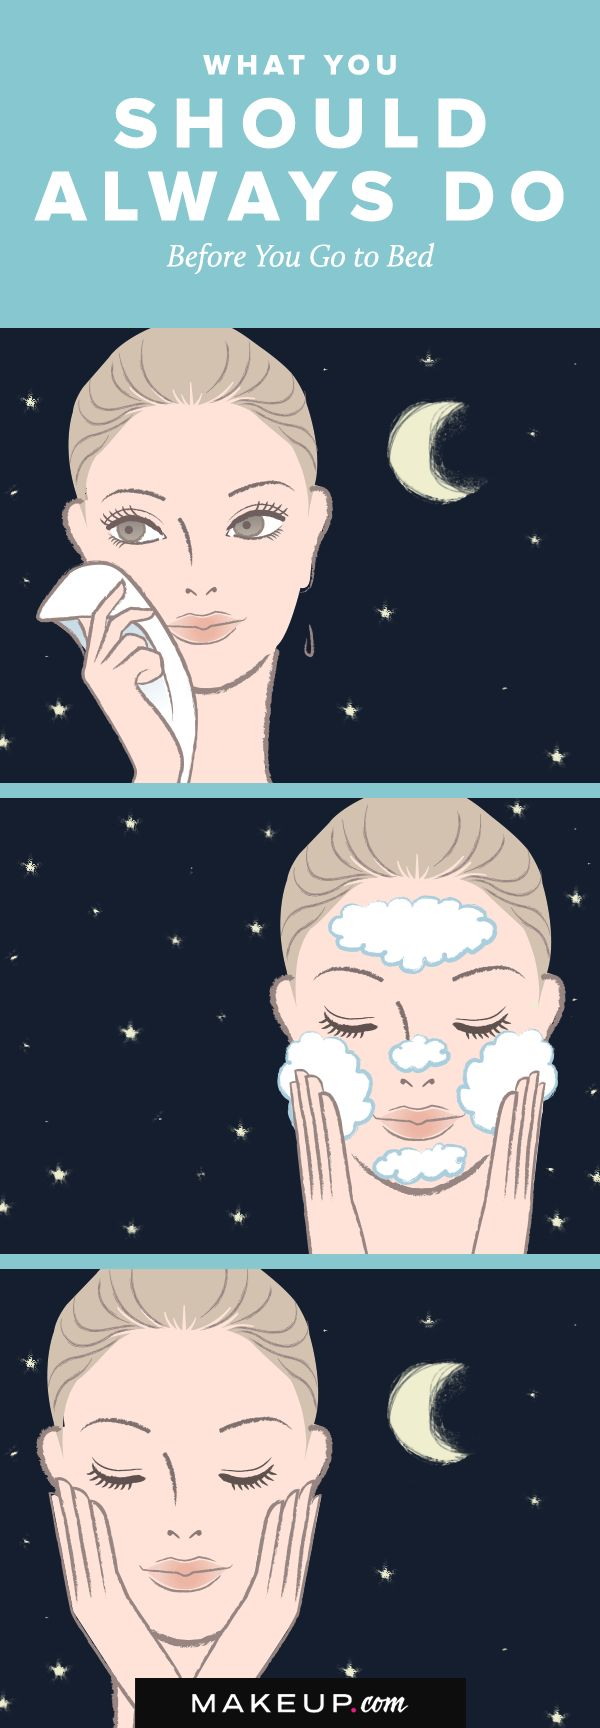 What You Should Always Do Before You Go to Bed @Makeup.com